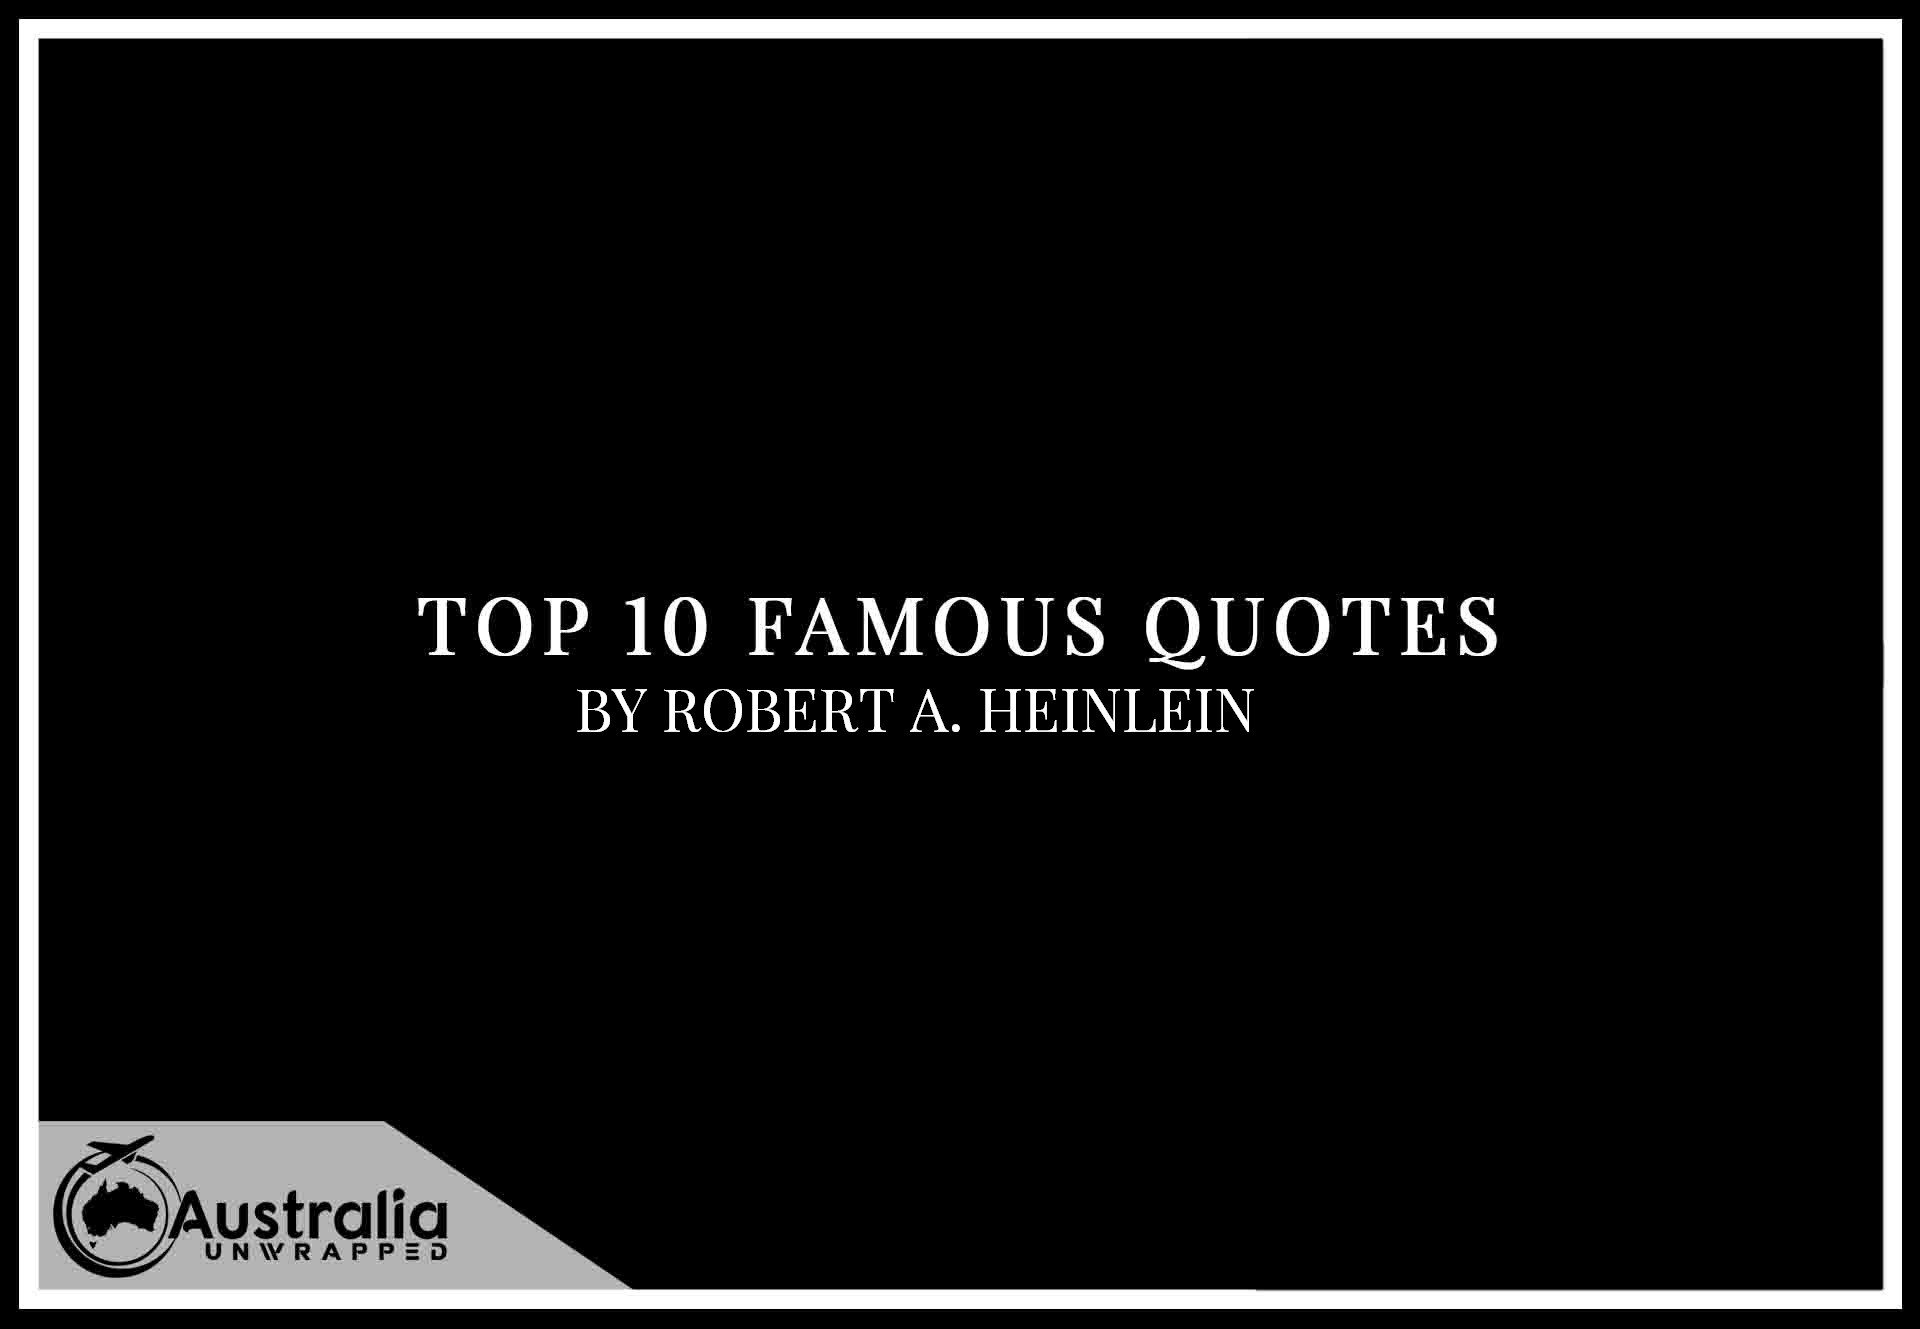 Top 10 Famous Quotes by Author Robert A. Heinlein